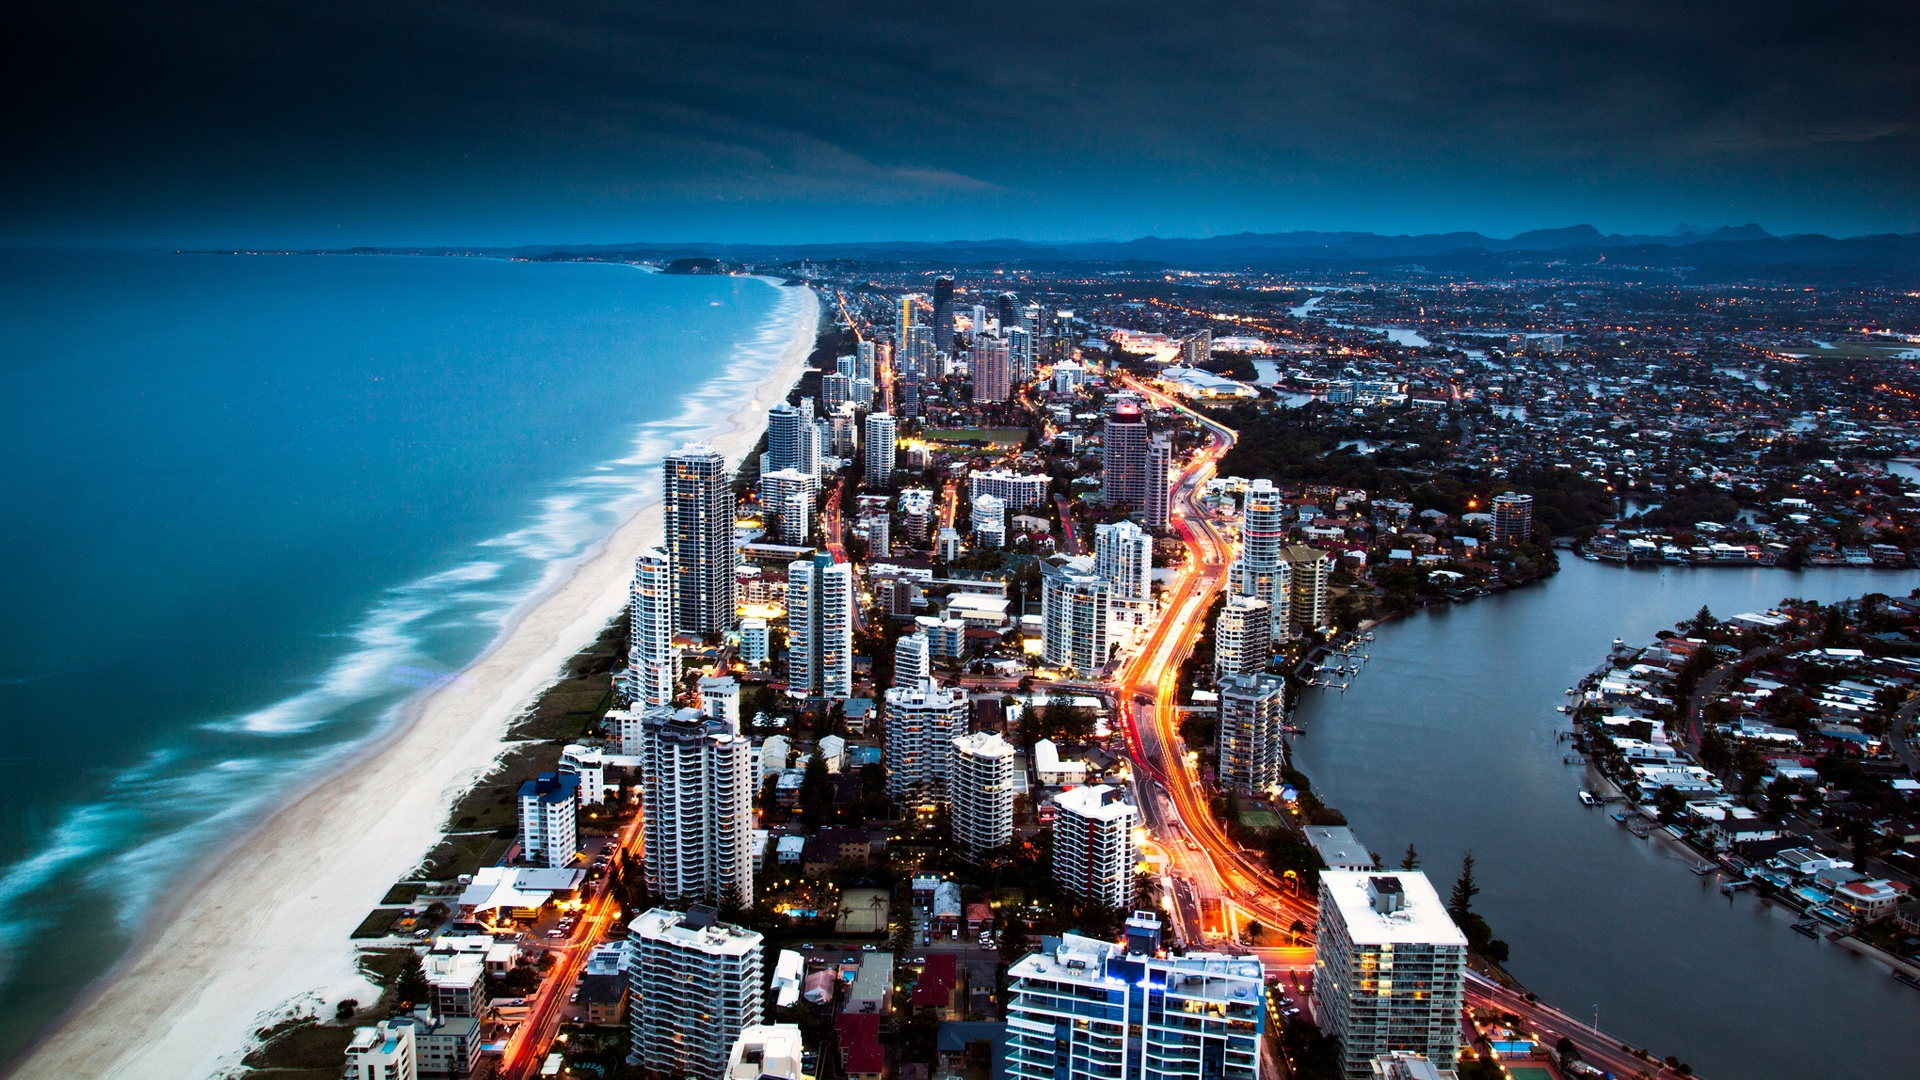 Awesome-Gold-Coast-Australia-1920x1080-Need-iPhone-S-Plus-Background-for-IPhone-wallpaper-wpc5802410